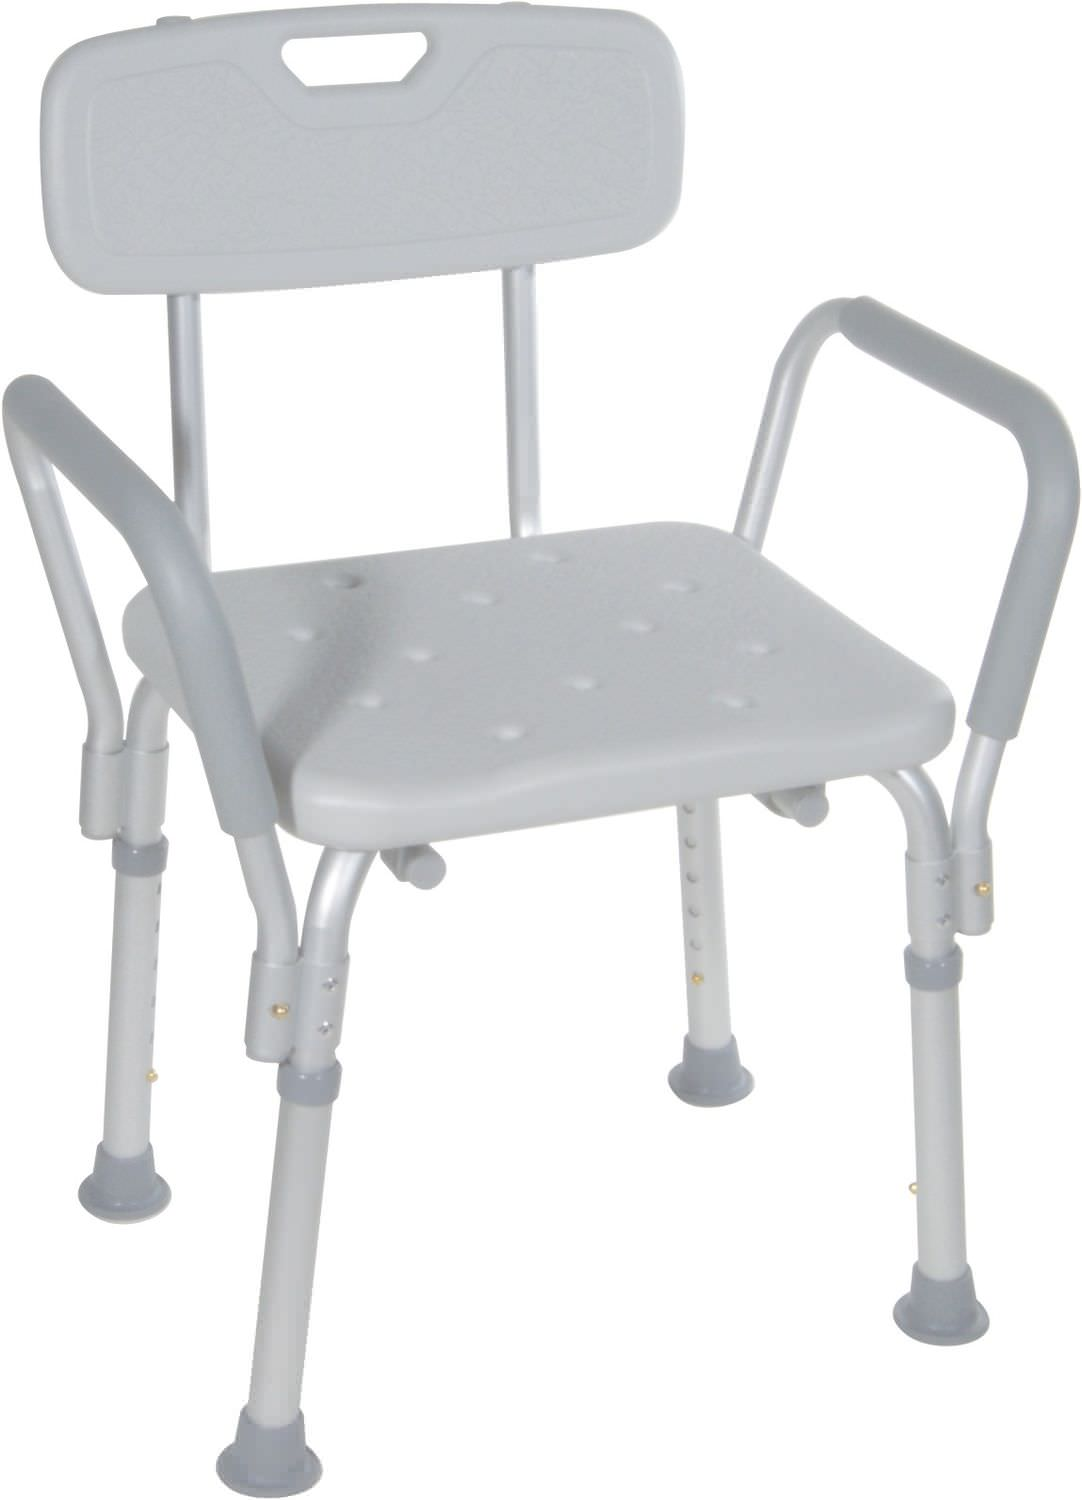 shower-chair-1